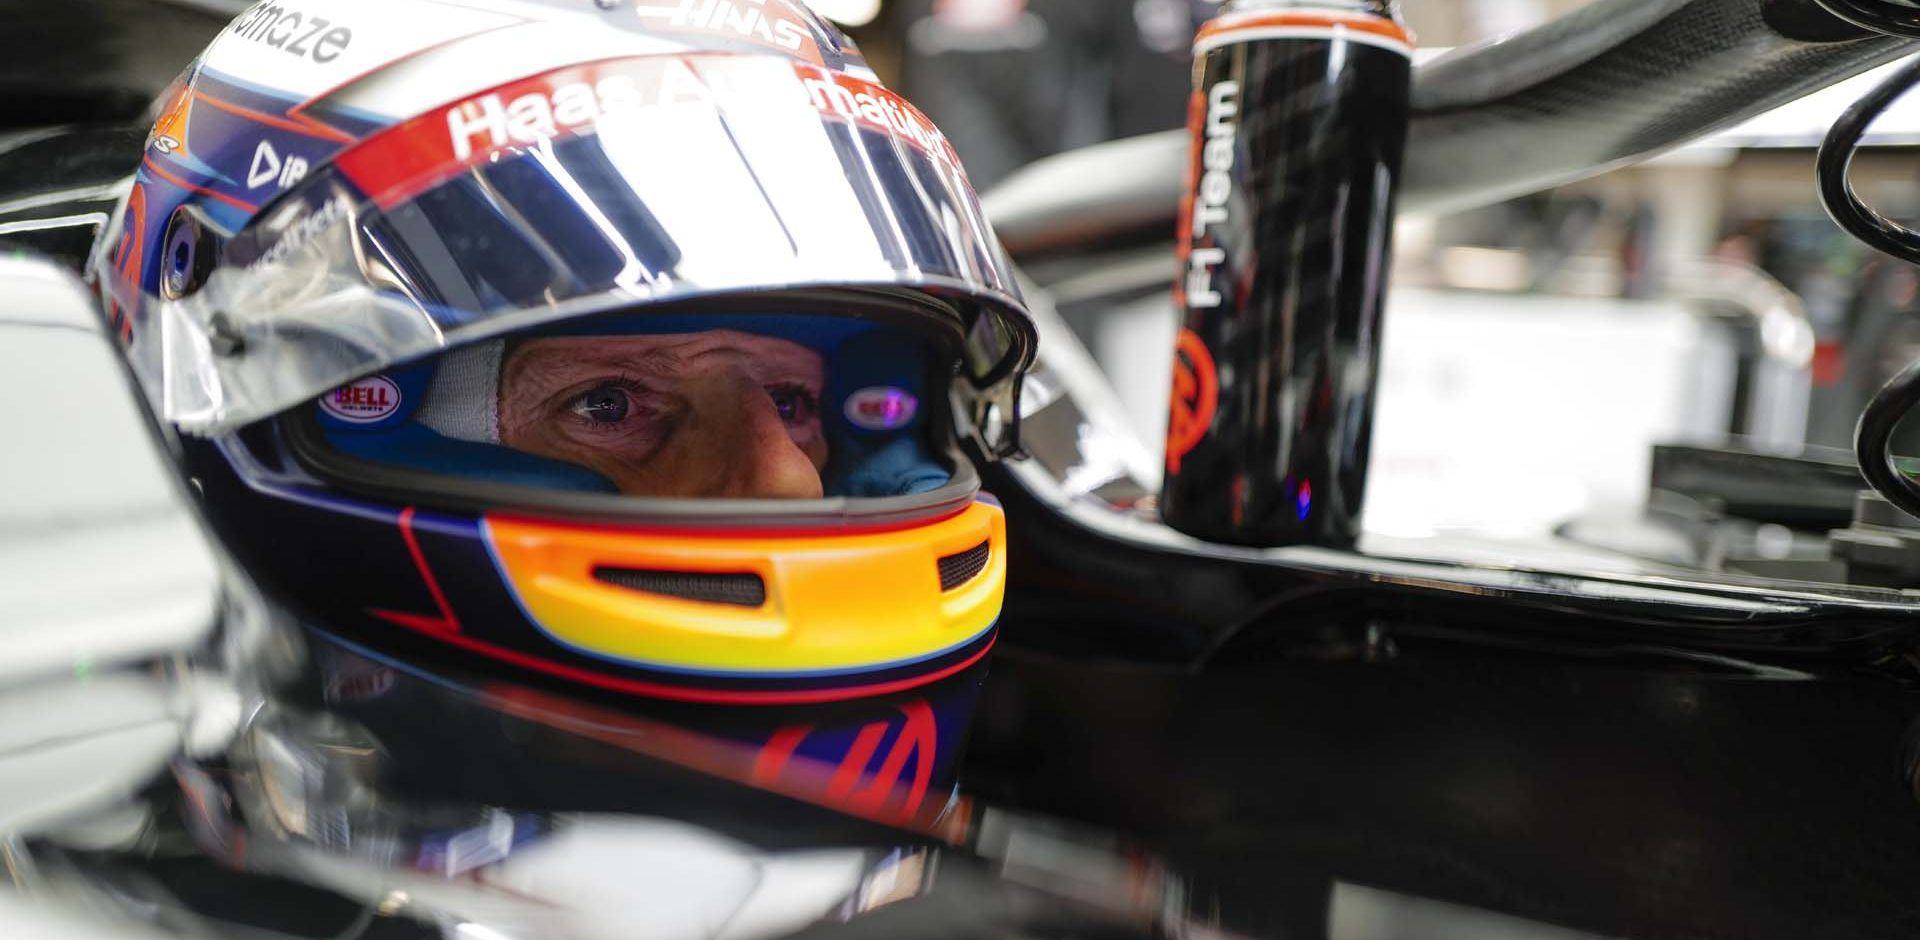 CIRCUIT DE BARCELONA-CATALUNYA, SPAIN - FEBRUARY 26: Romain Grosjean, Haas VF-20 sits in his car in the garage during the Barcelona February testing II at Circuit de Barcelona-Catalunya on February 26, 2020 in Circuit de Barcelona-Catalunya, Spain.